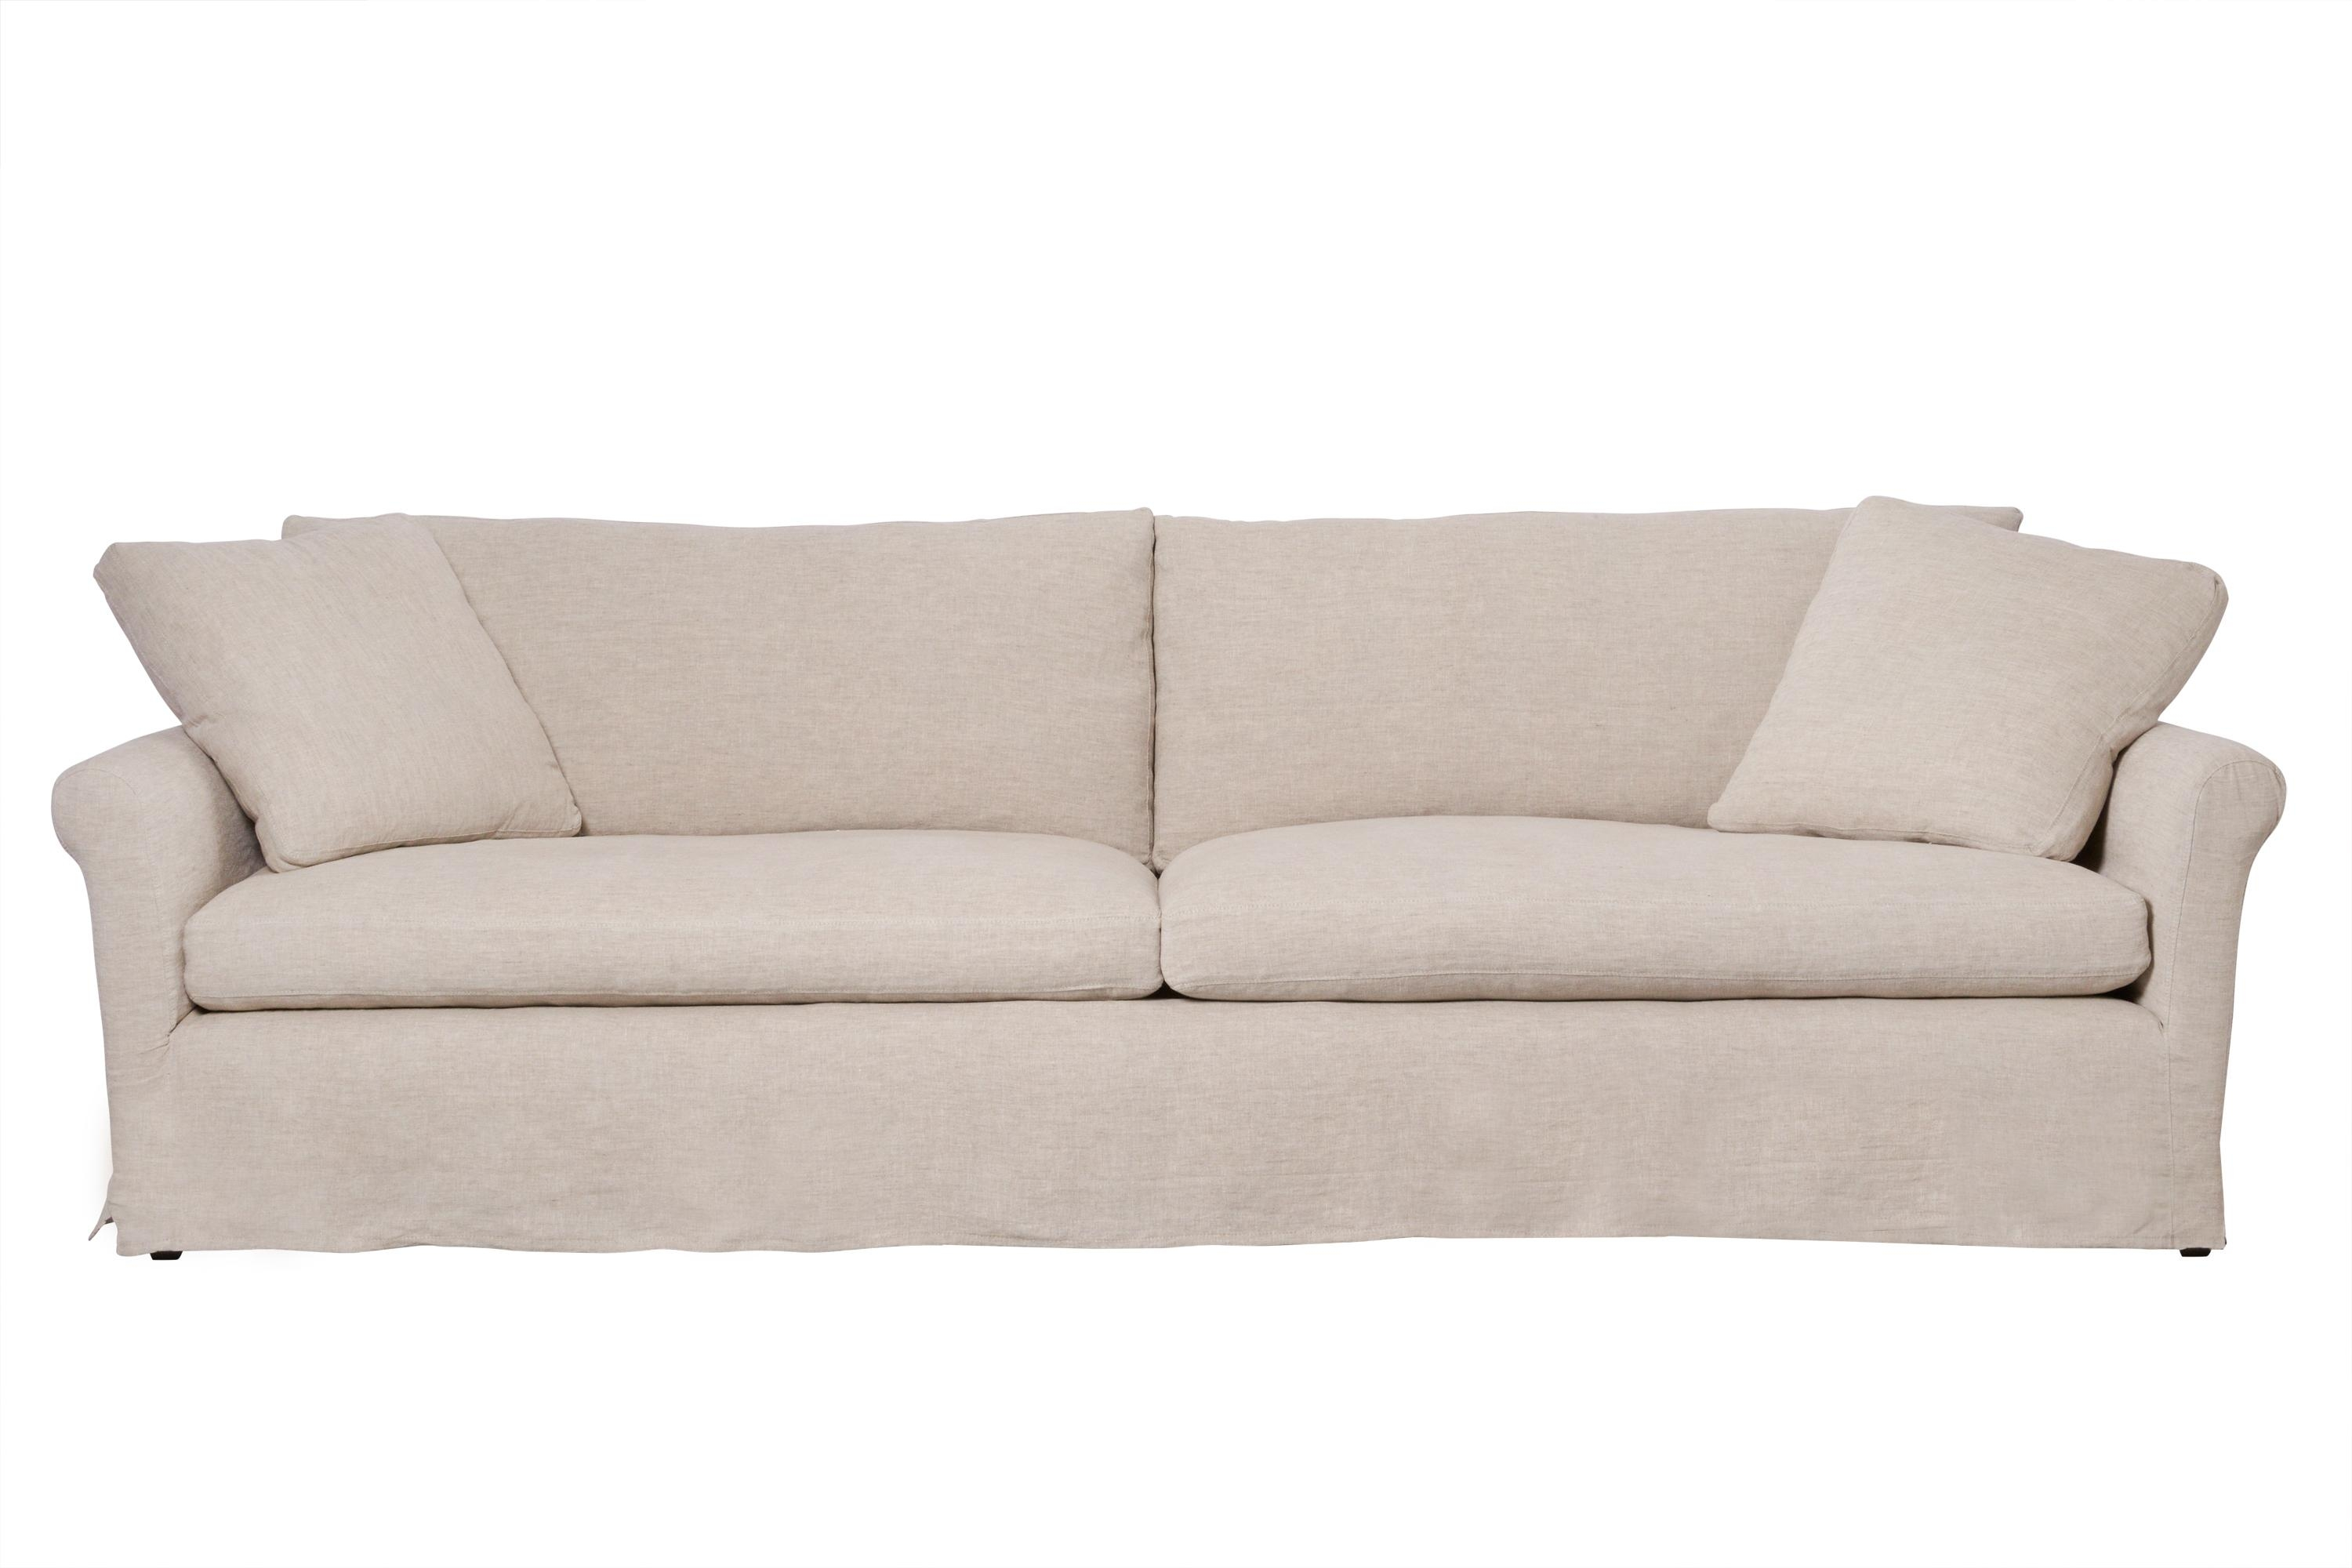 cisco brothers sofa reviews transitional living room leather 20 best collection of sofas ideas